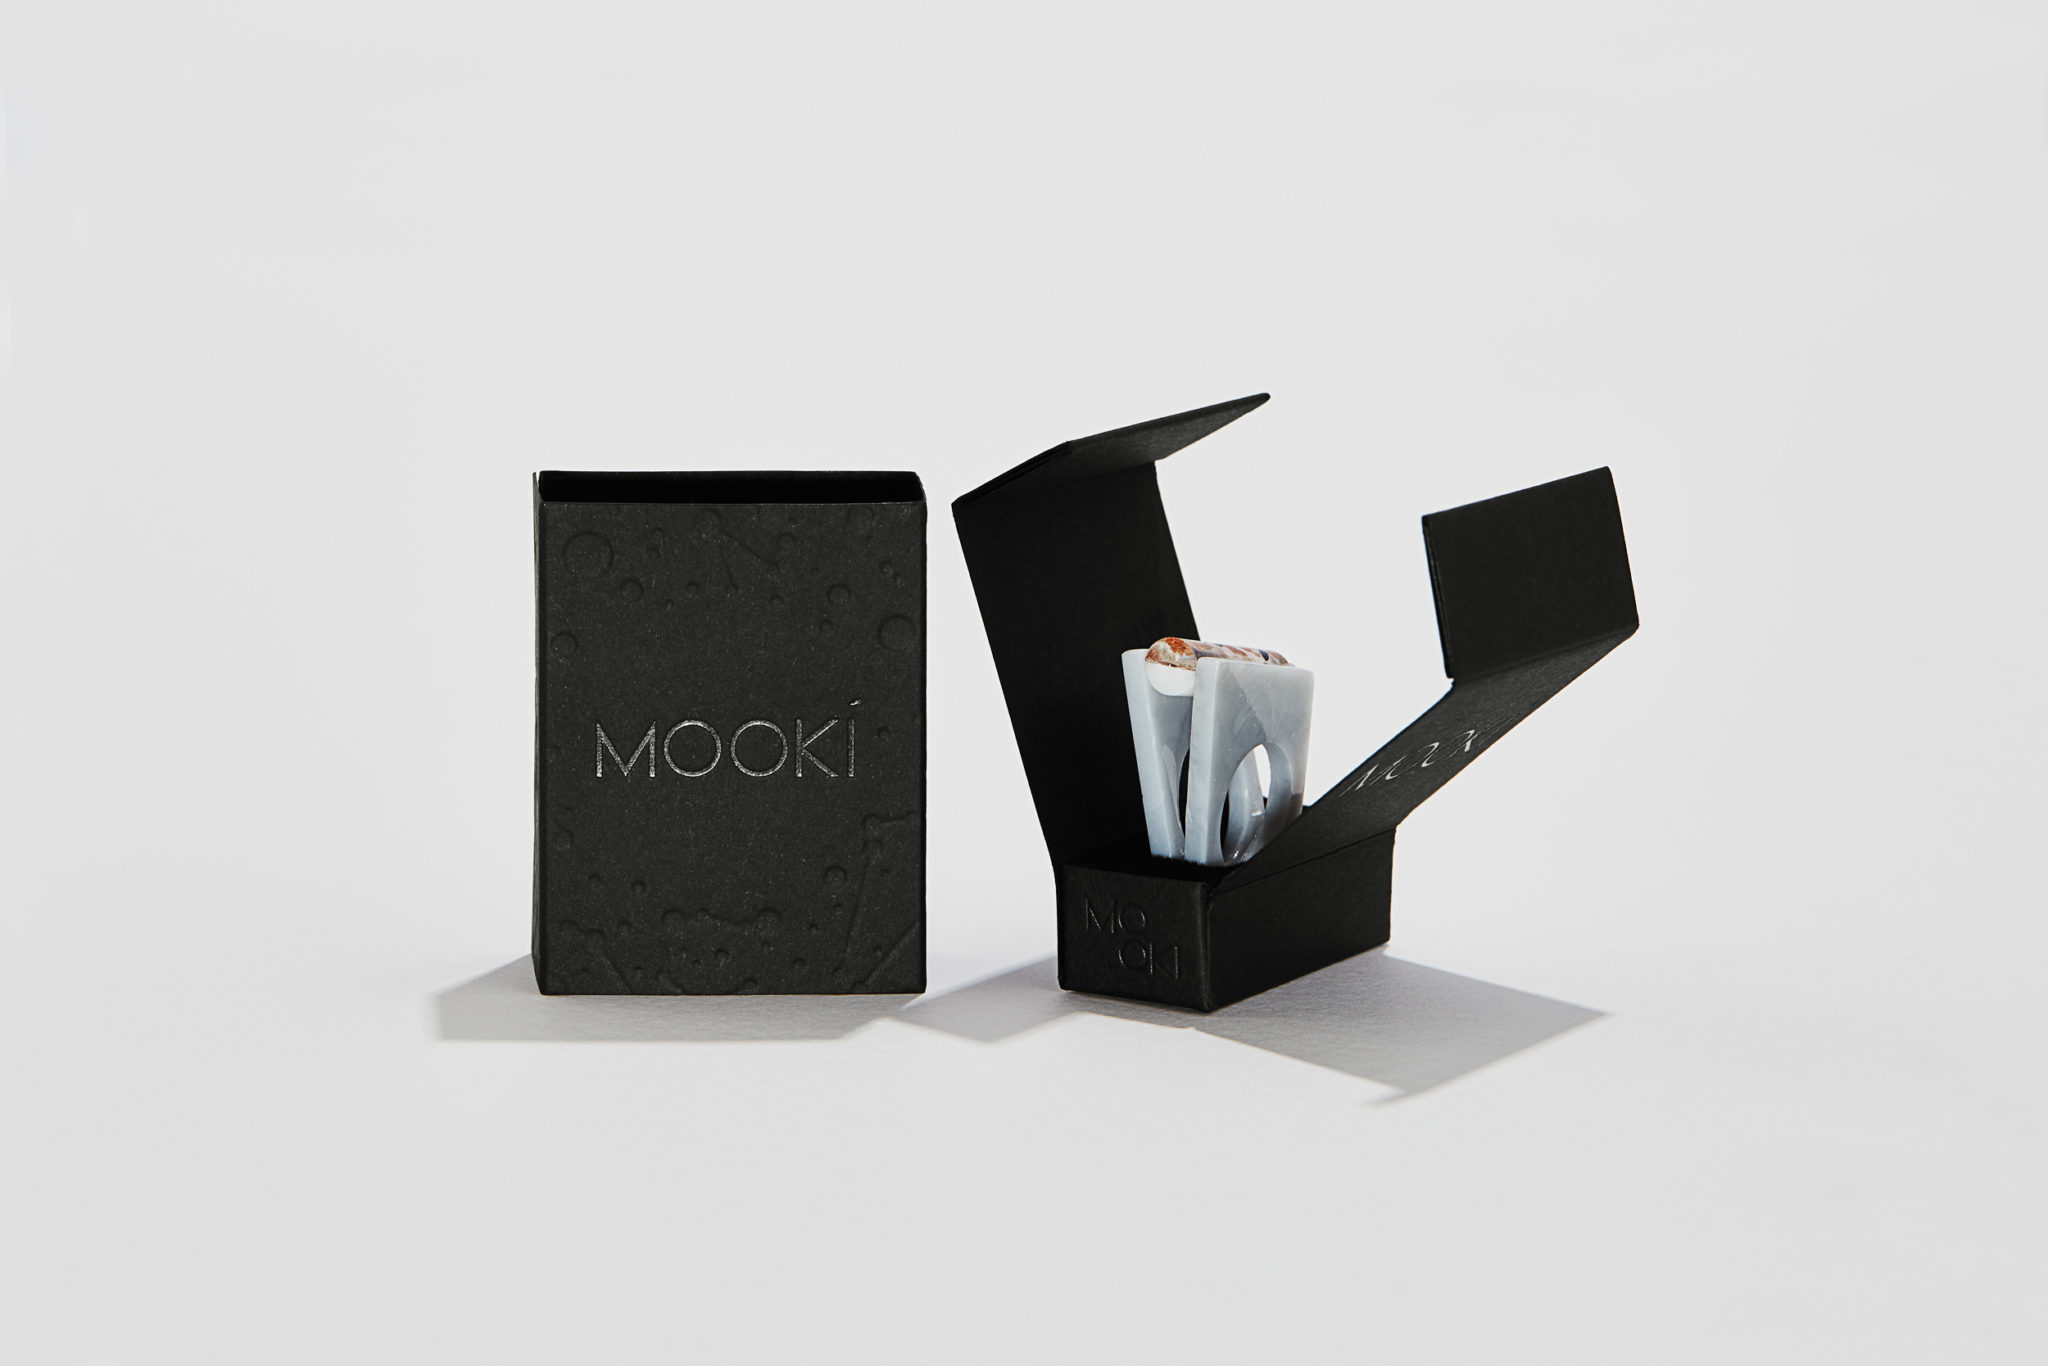 Letterpress and Foil Packaging for Mooki on Keaykolour Jet Black 2